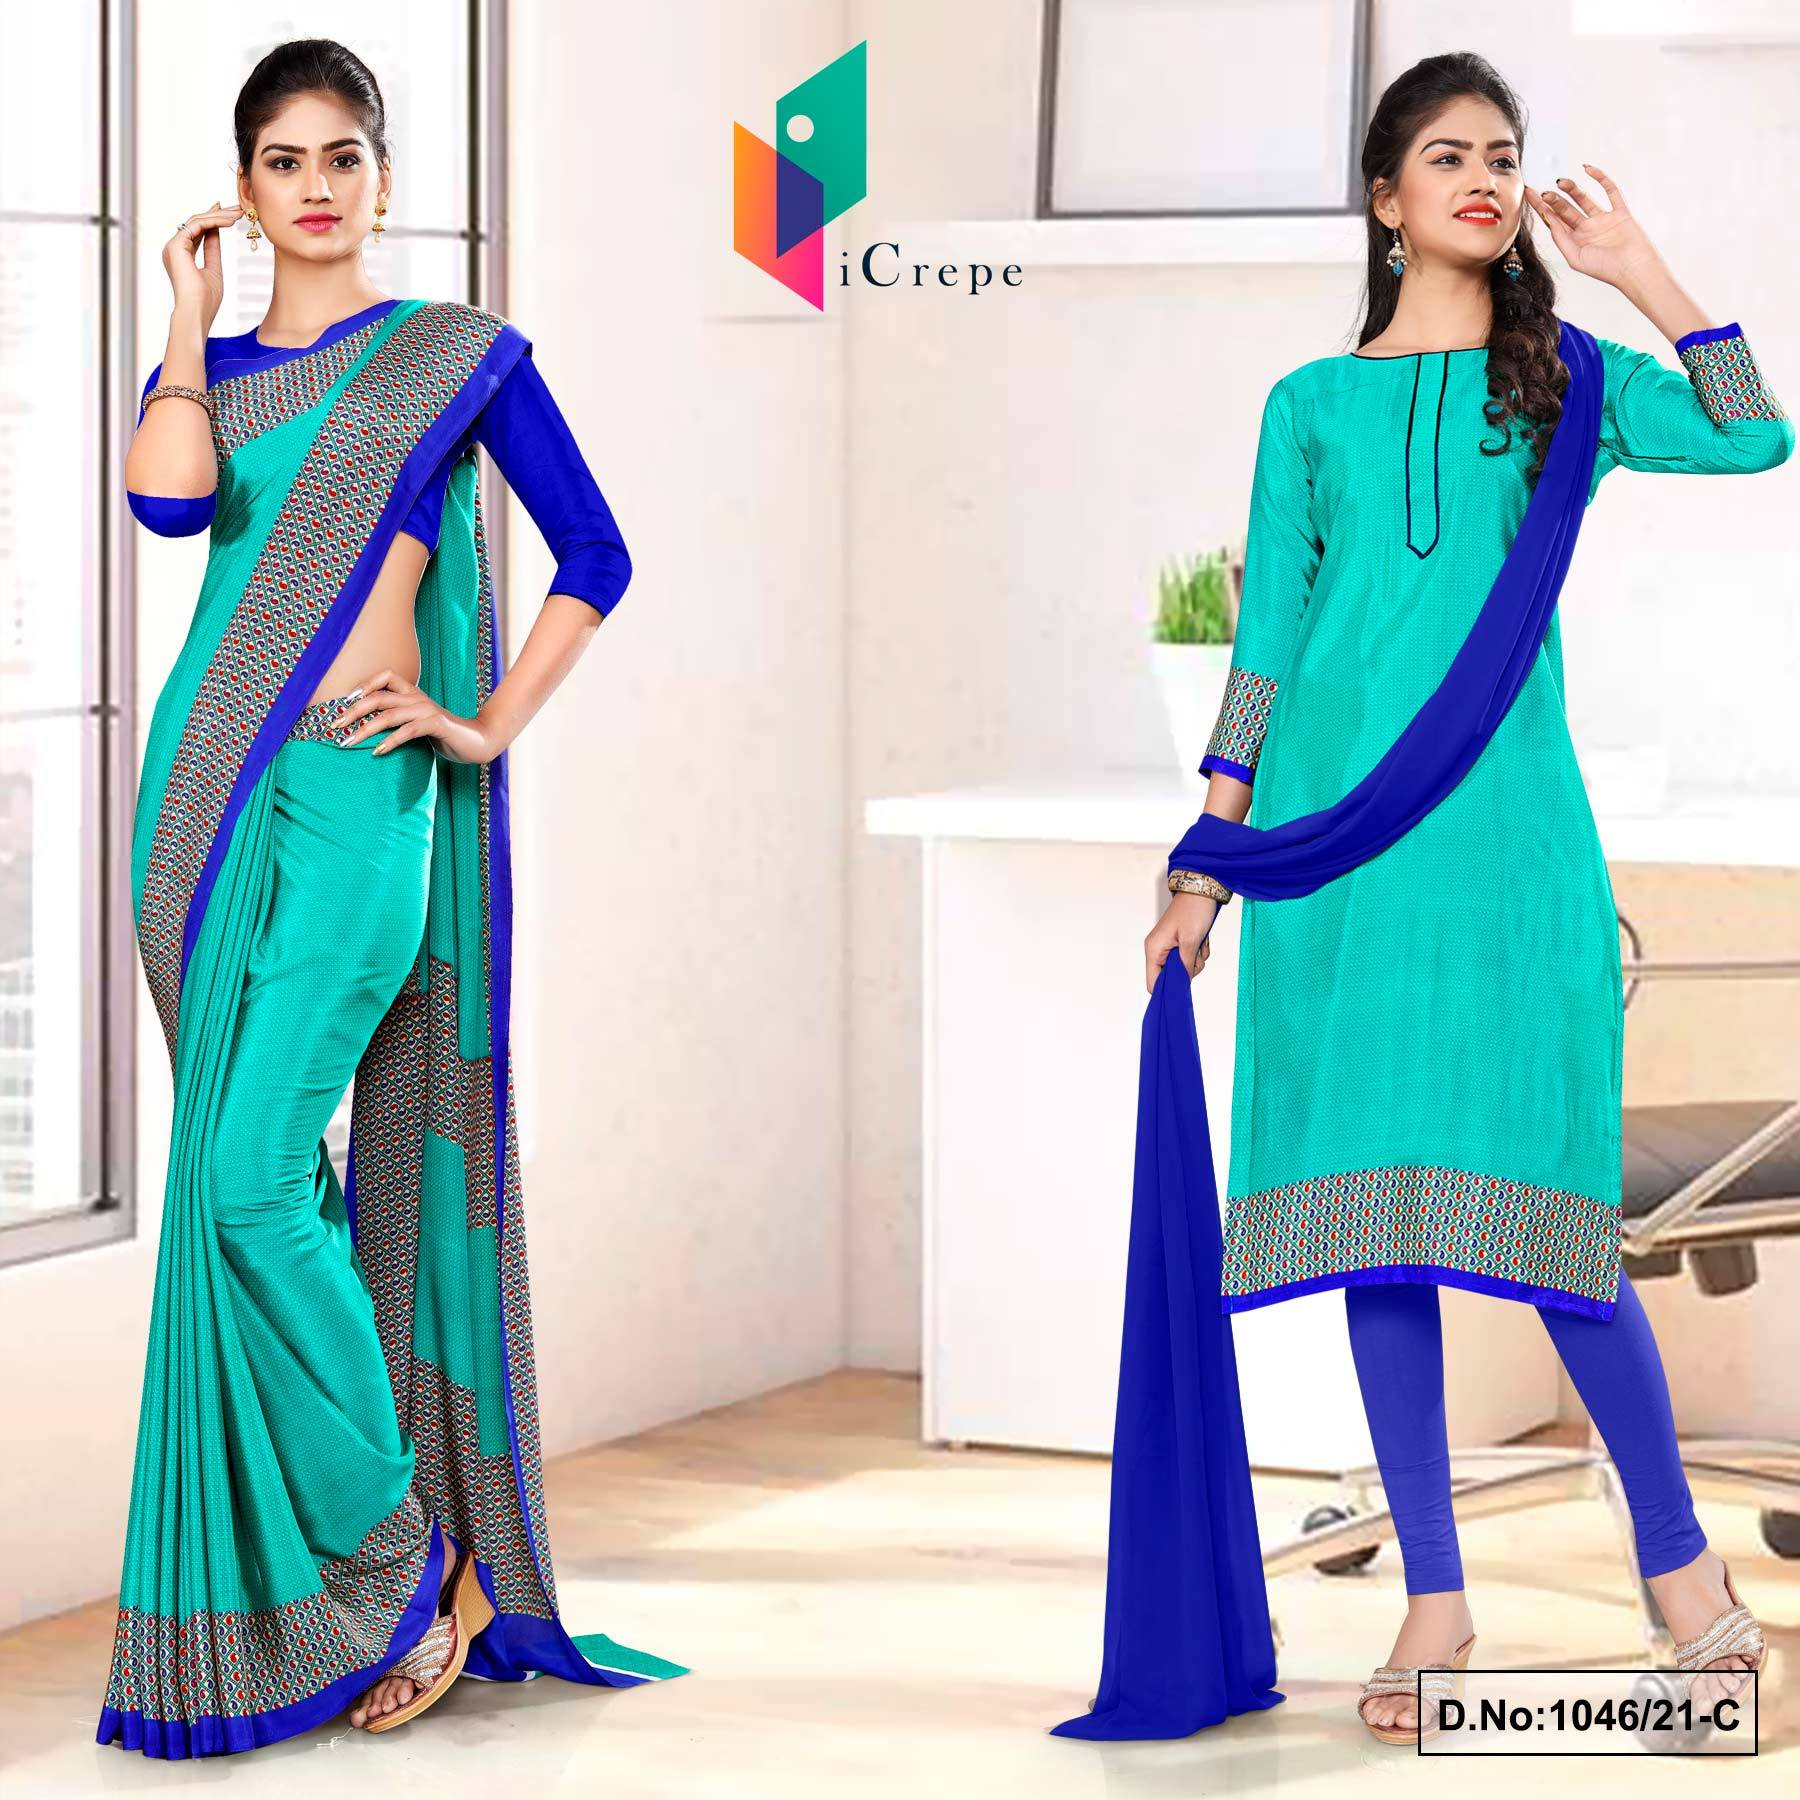 Sea Green Blue Premium Italian Silk Crepe Uniforms Saree Salwar Combo for Hospital Staff